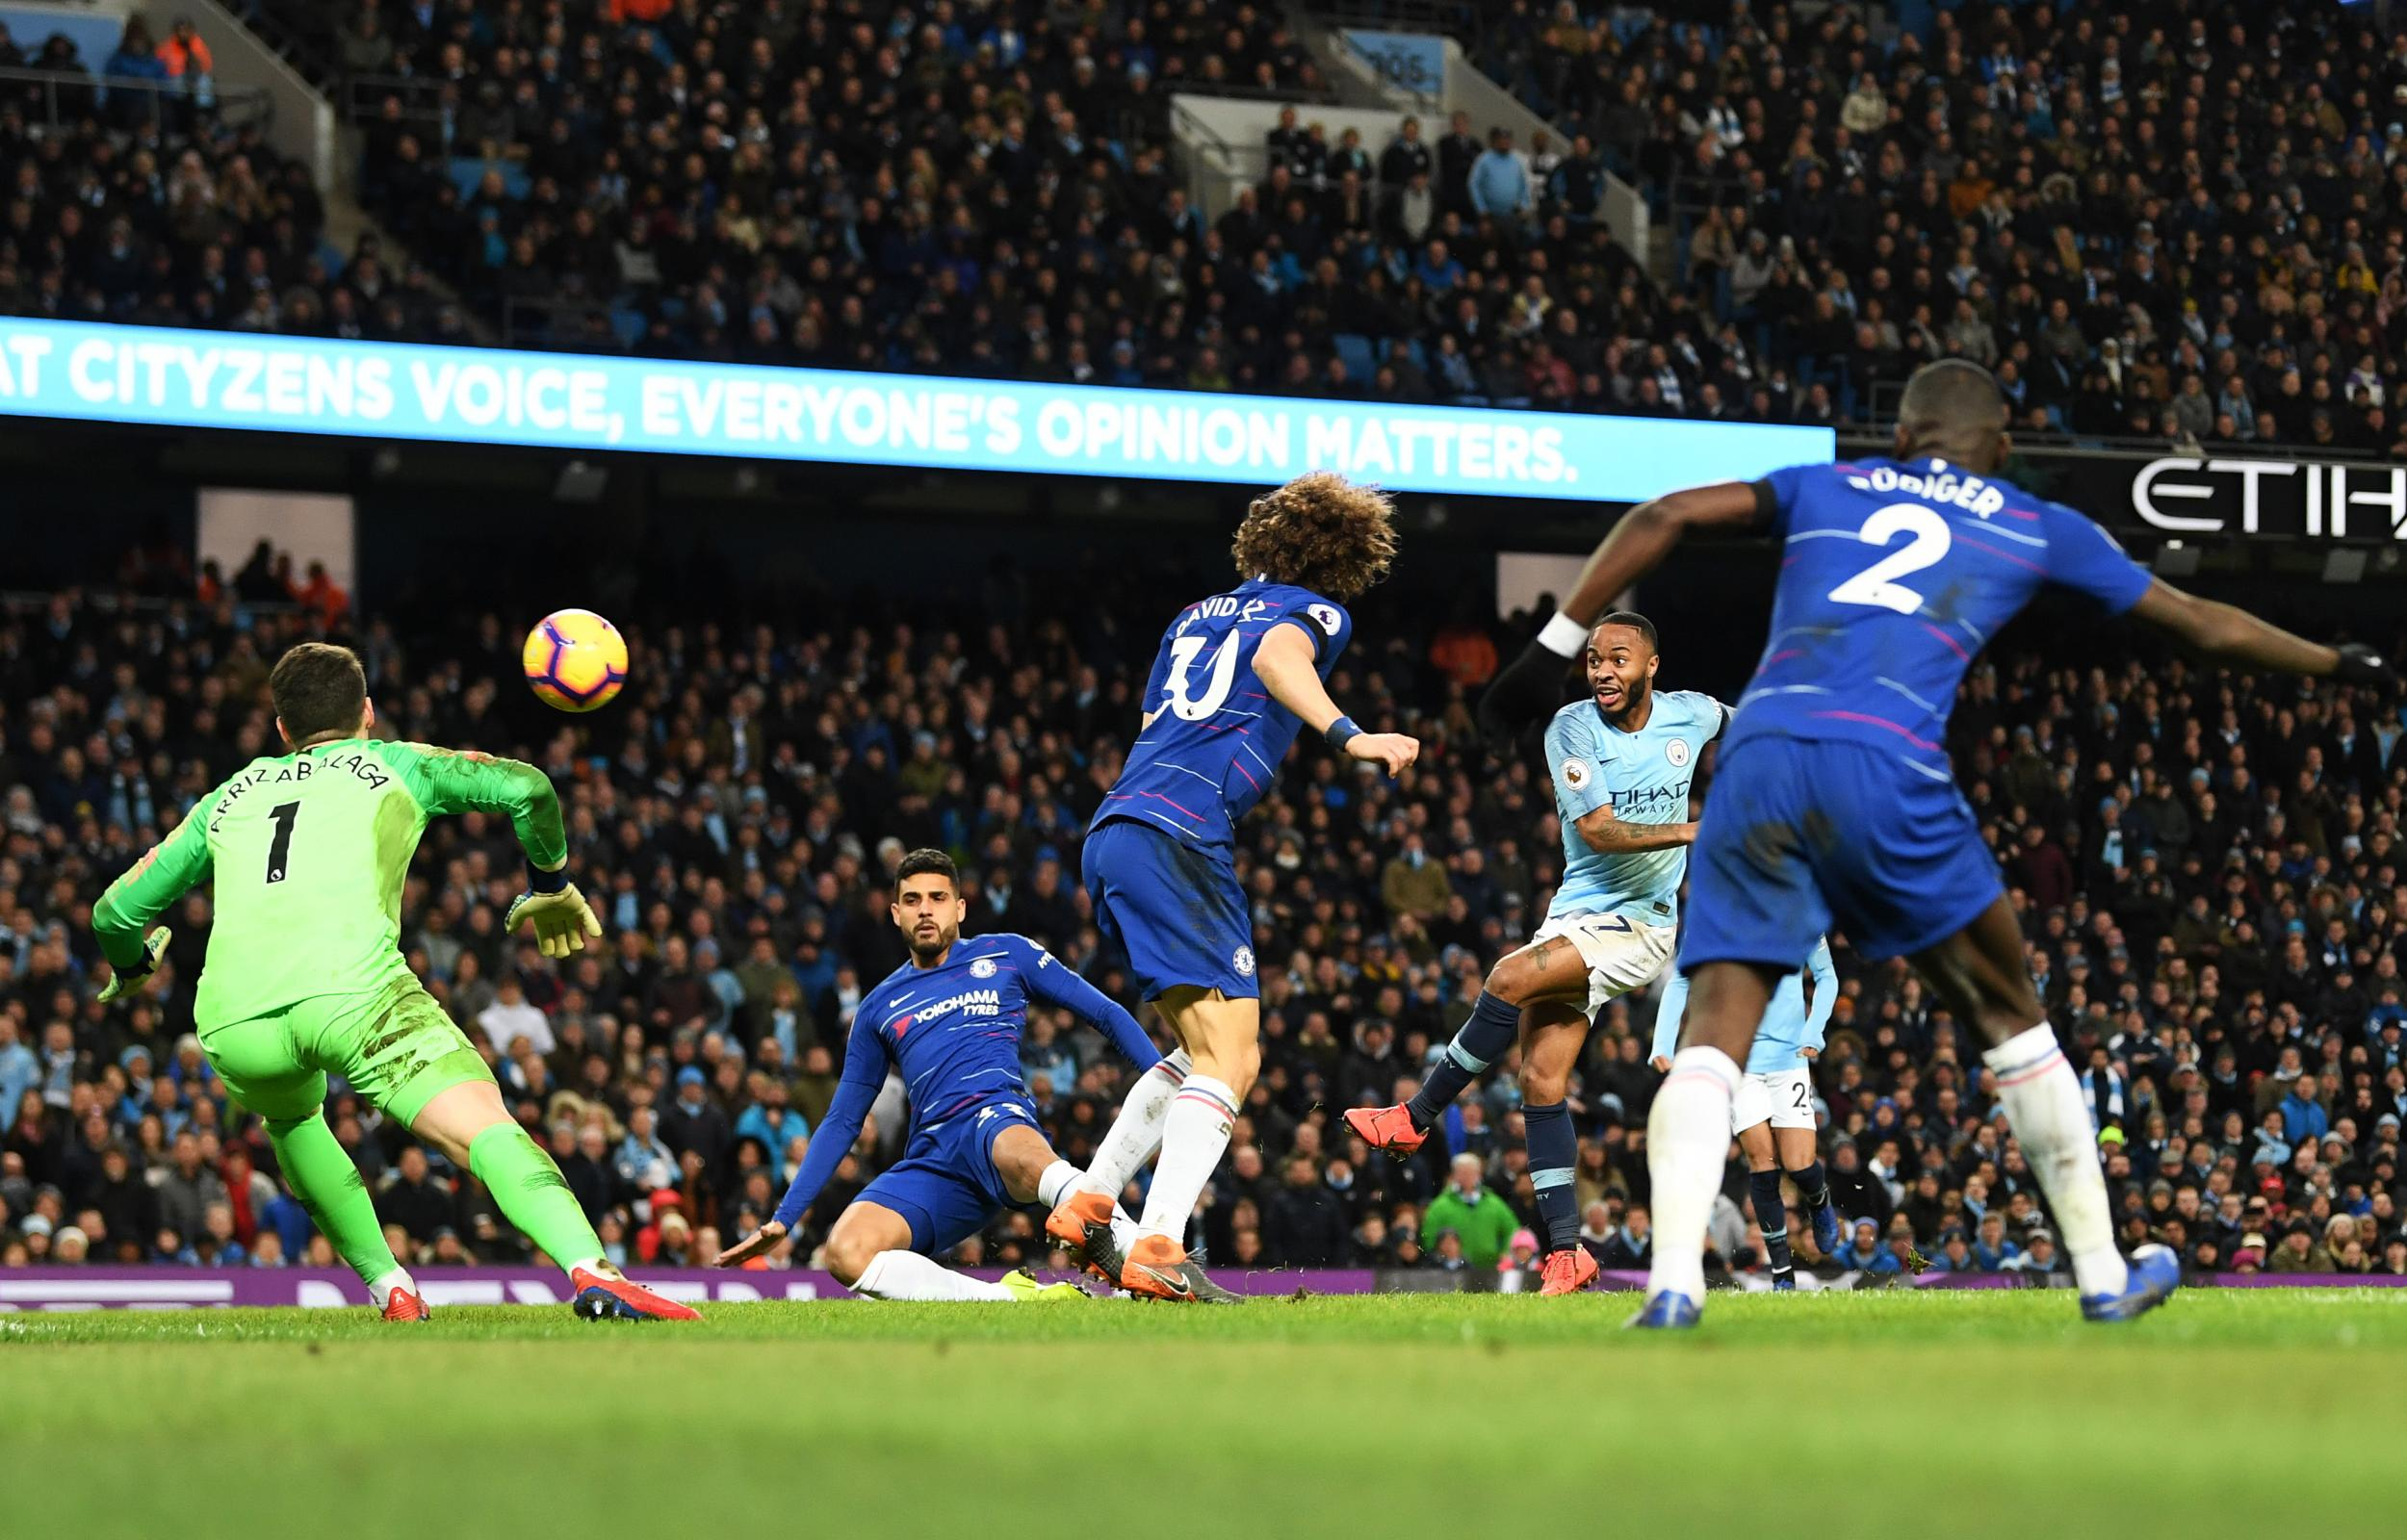 Manchester City beat Chelsea 6-0 as Aguero scores another hat-trick